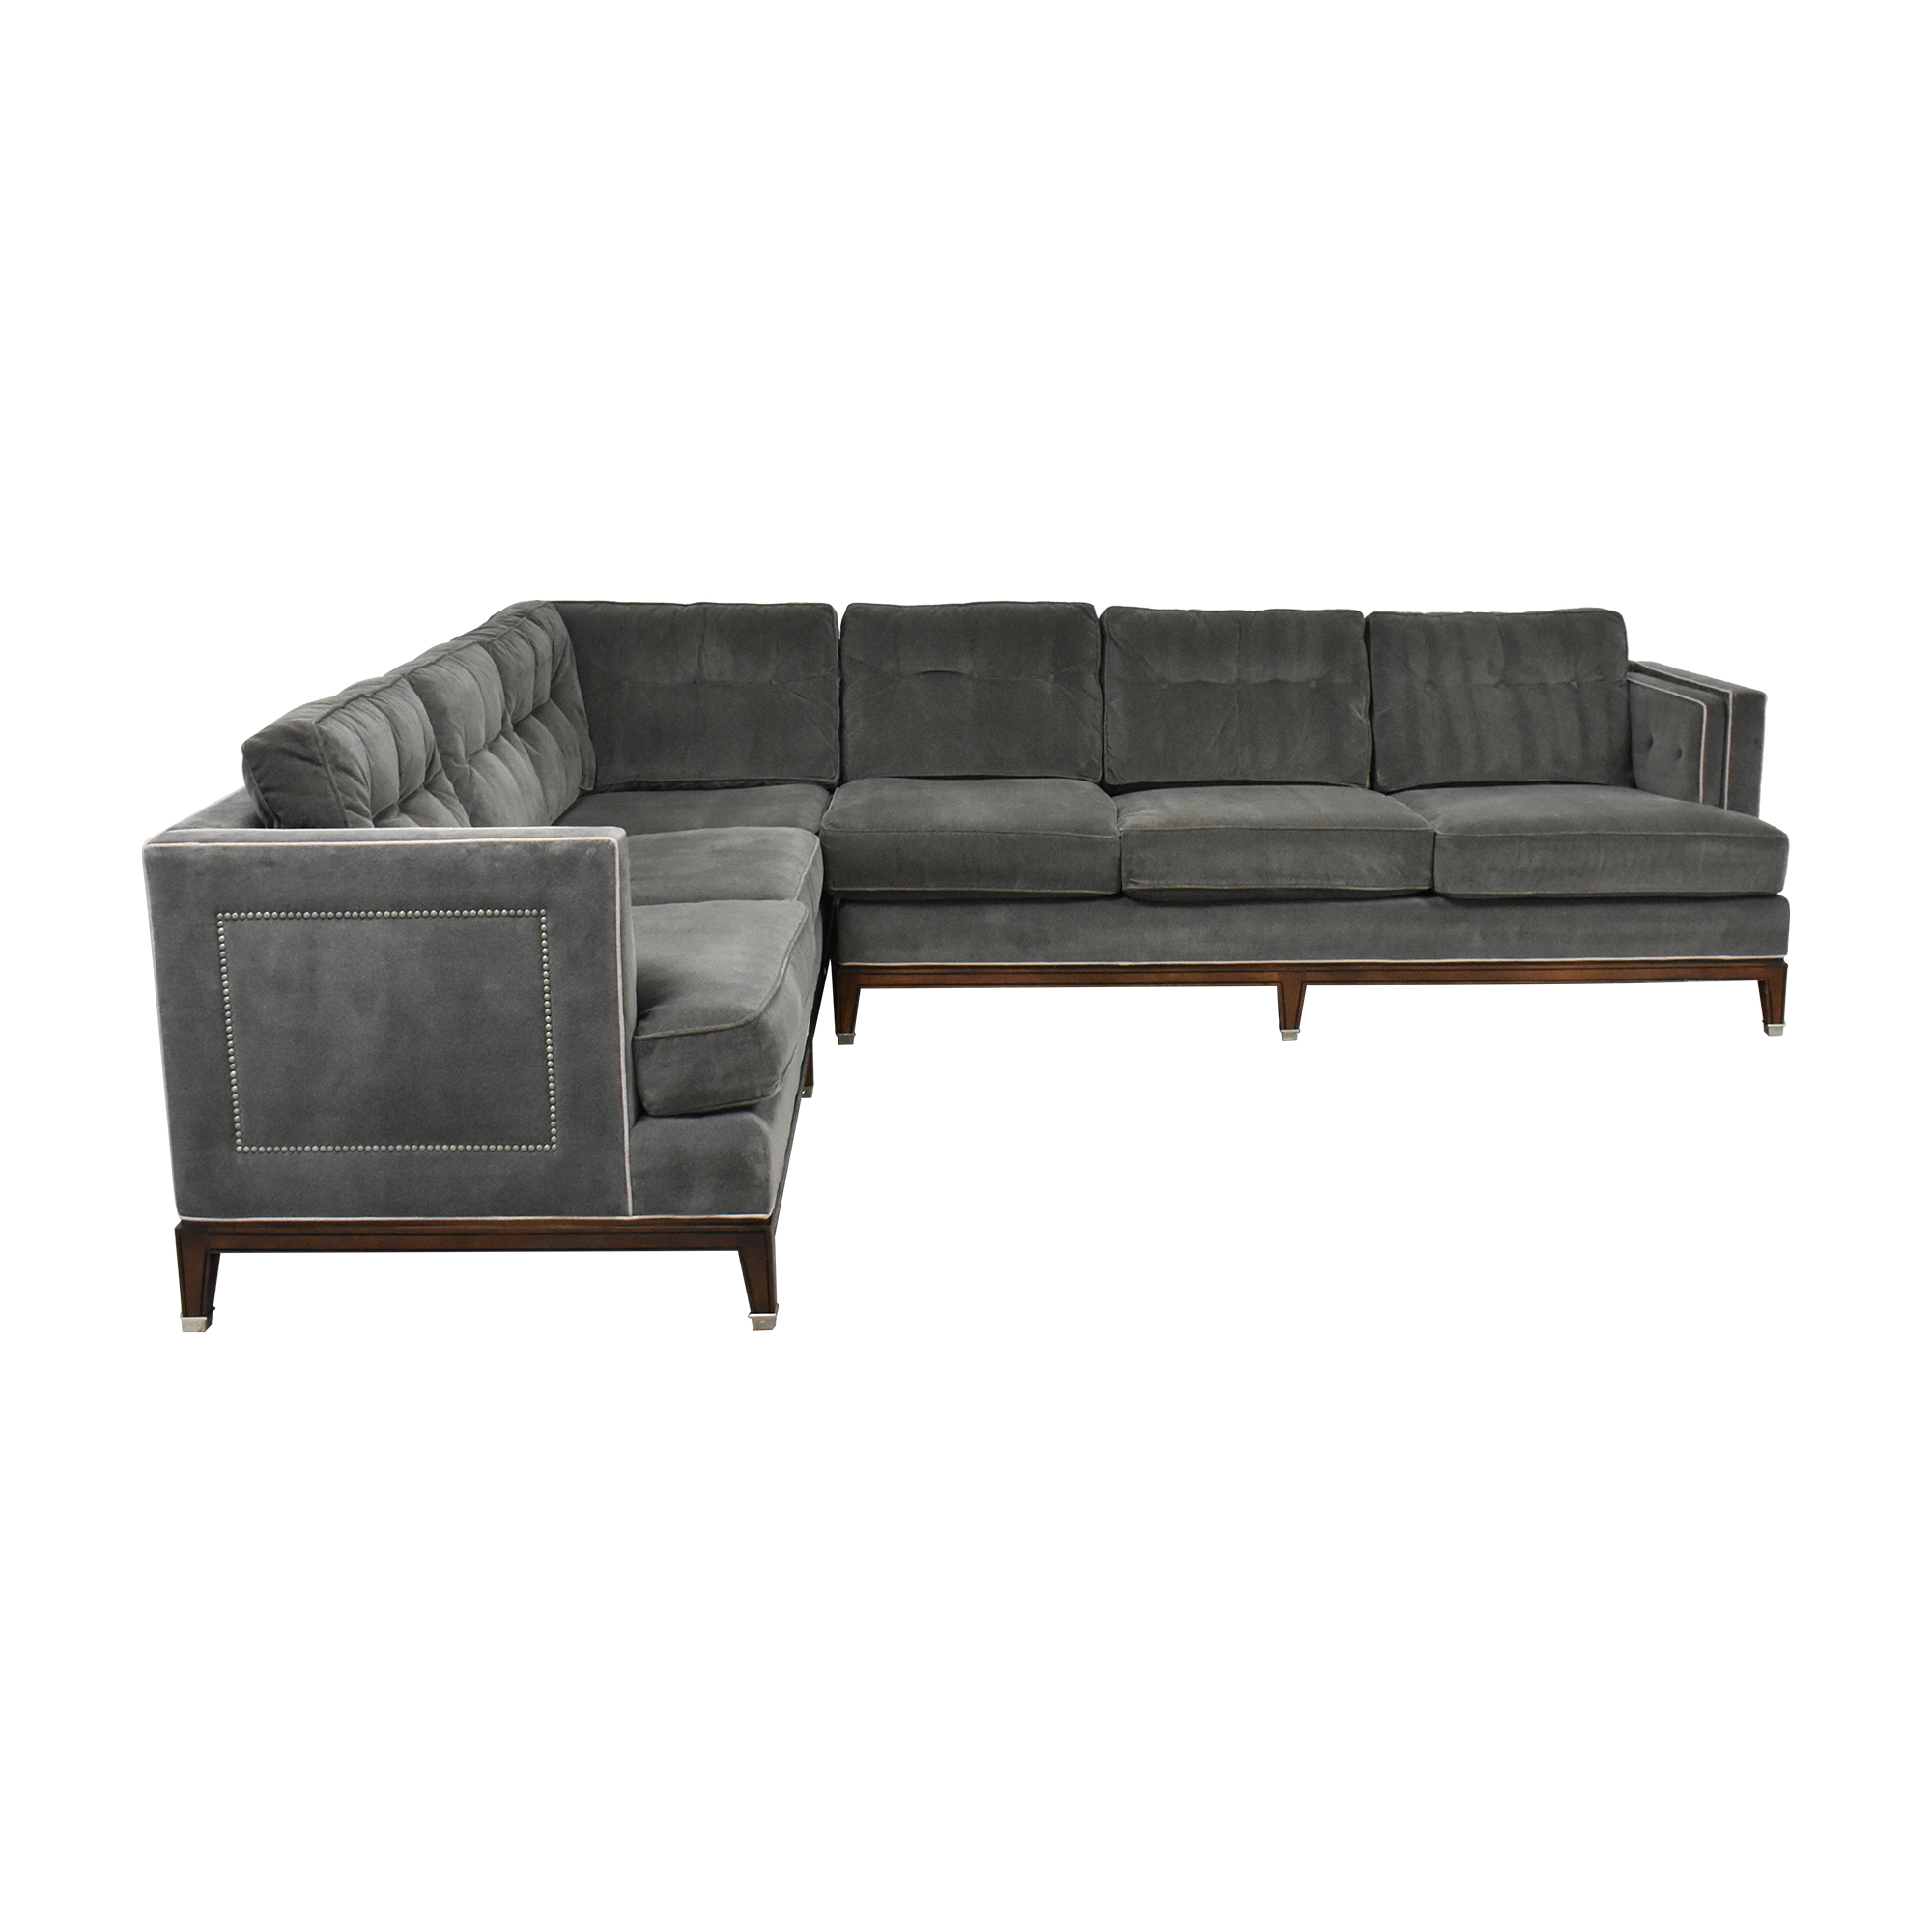 Vanguard Furniture Vanguard  Furniture Whitaker Sectional Sofa for sale